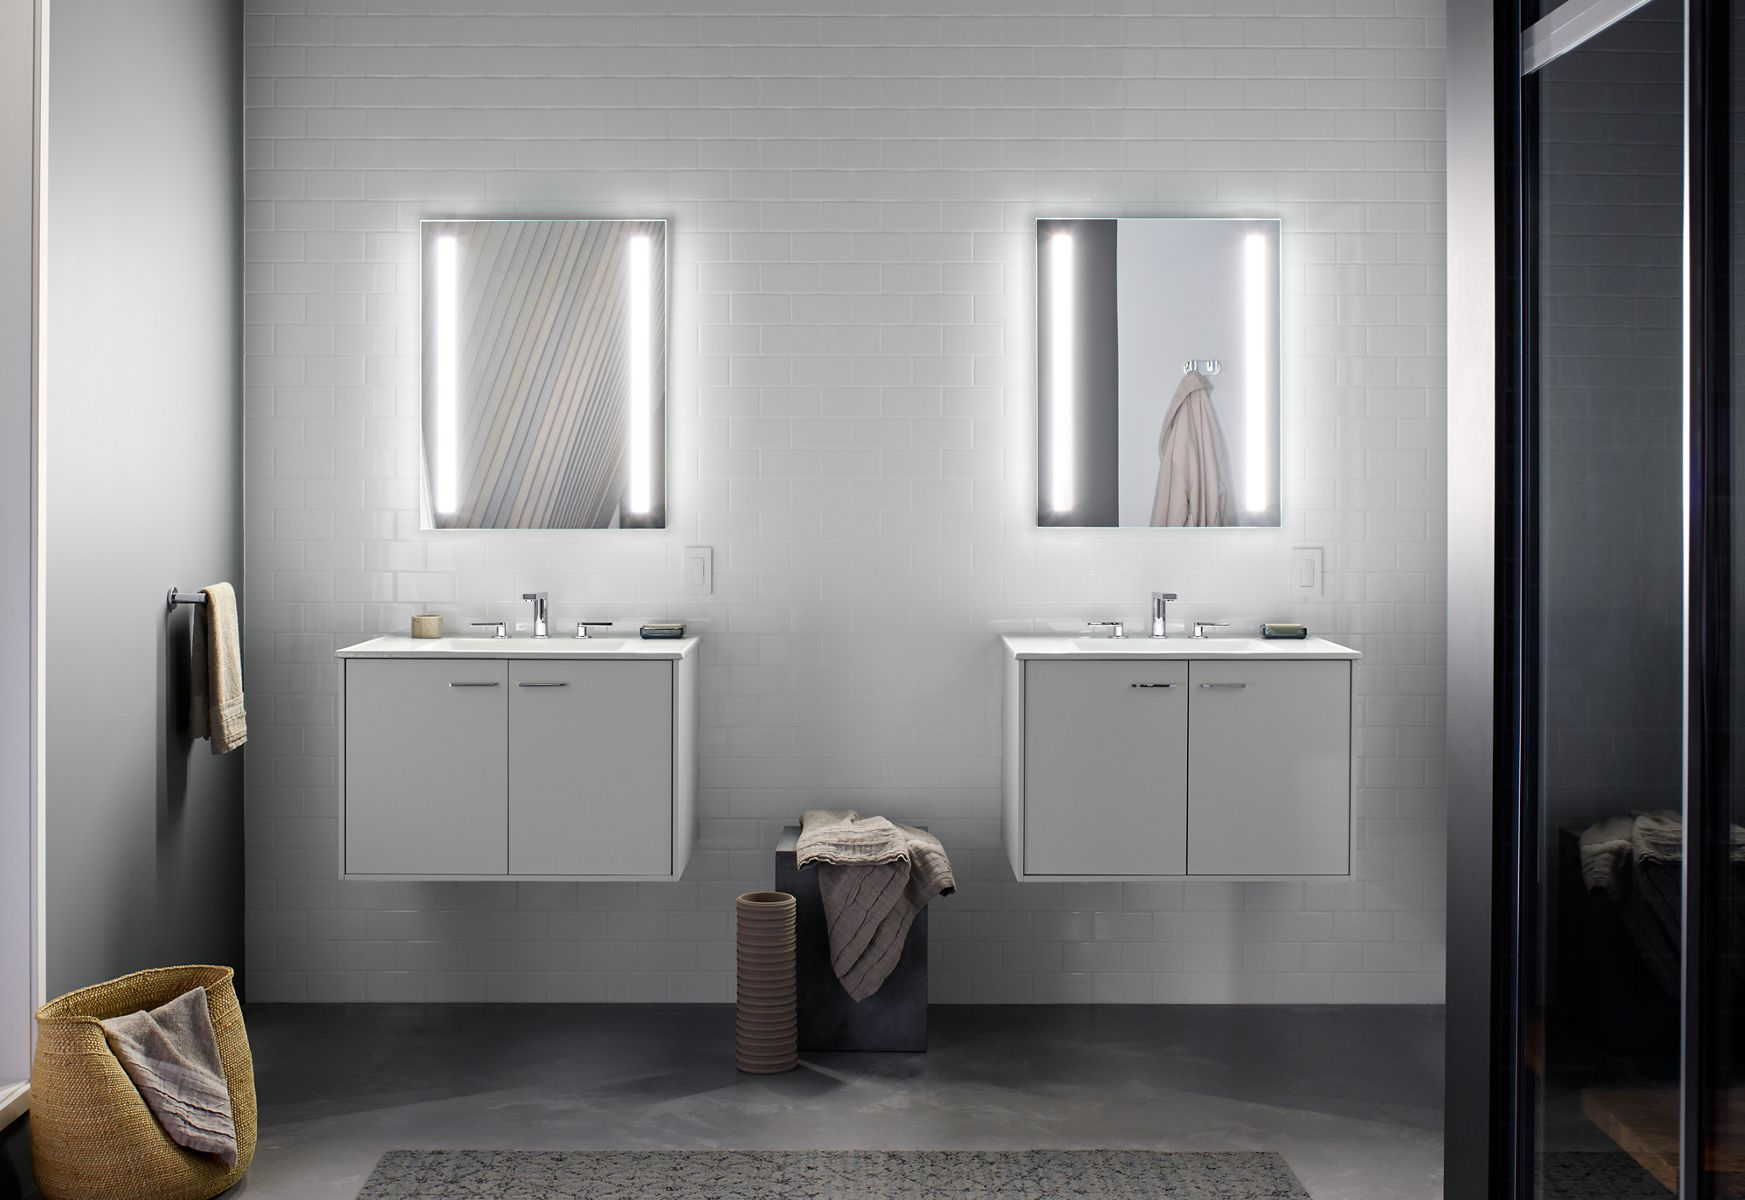 Merveilleux Better Light. Better You.™. Verdera® Lighted Mirrors U0026 Medicine Cabinets